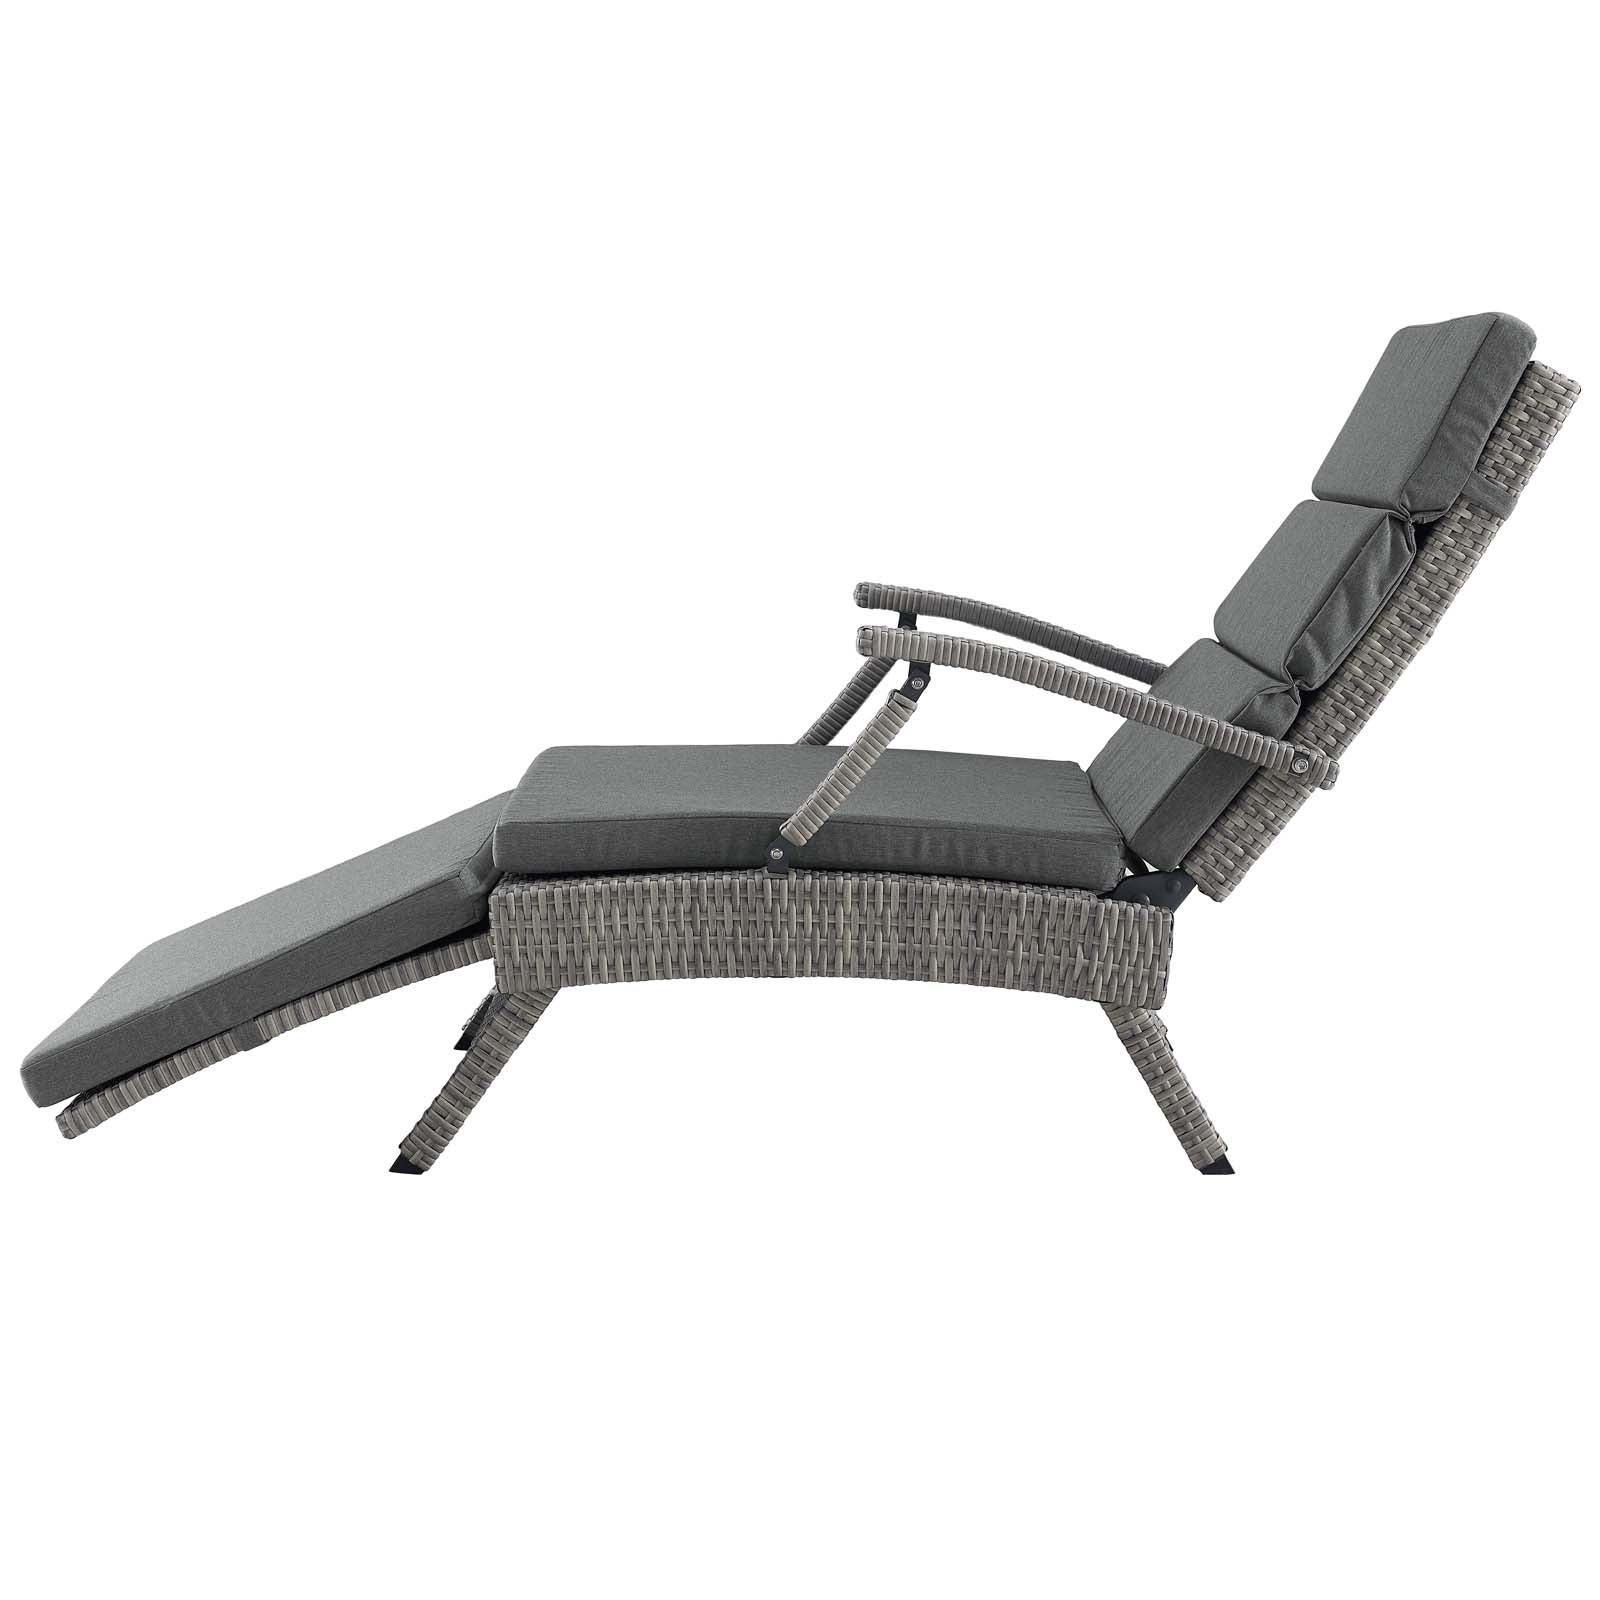 Famous Envisage Chaise Outdoor Patio Wicker Rattan Lounge Chair For Envisage Chaise Outdoor Patio Wicker Rattan Lounge Chairs (View 1 of 25)